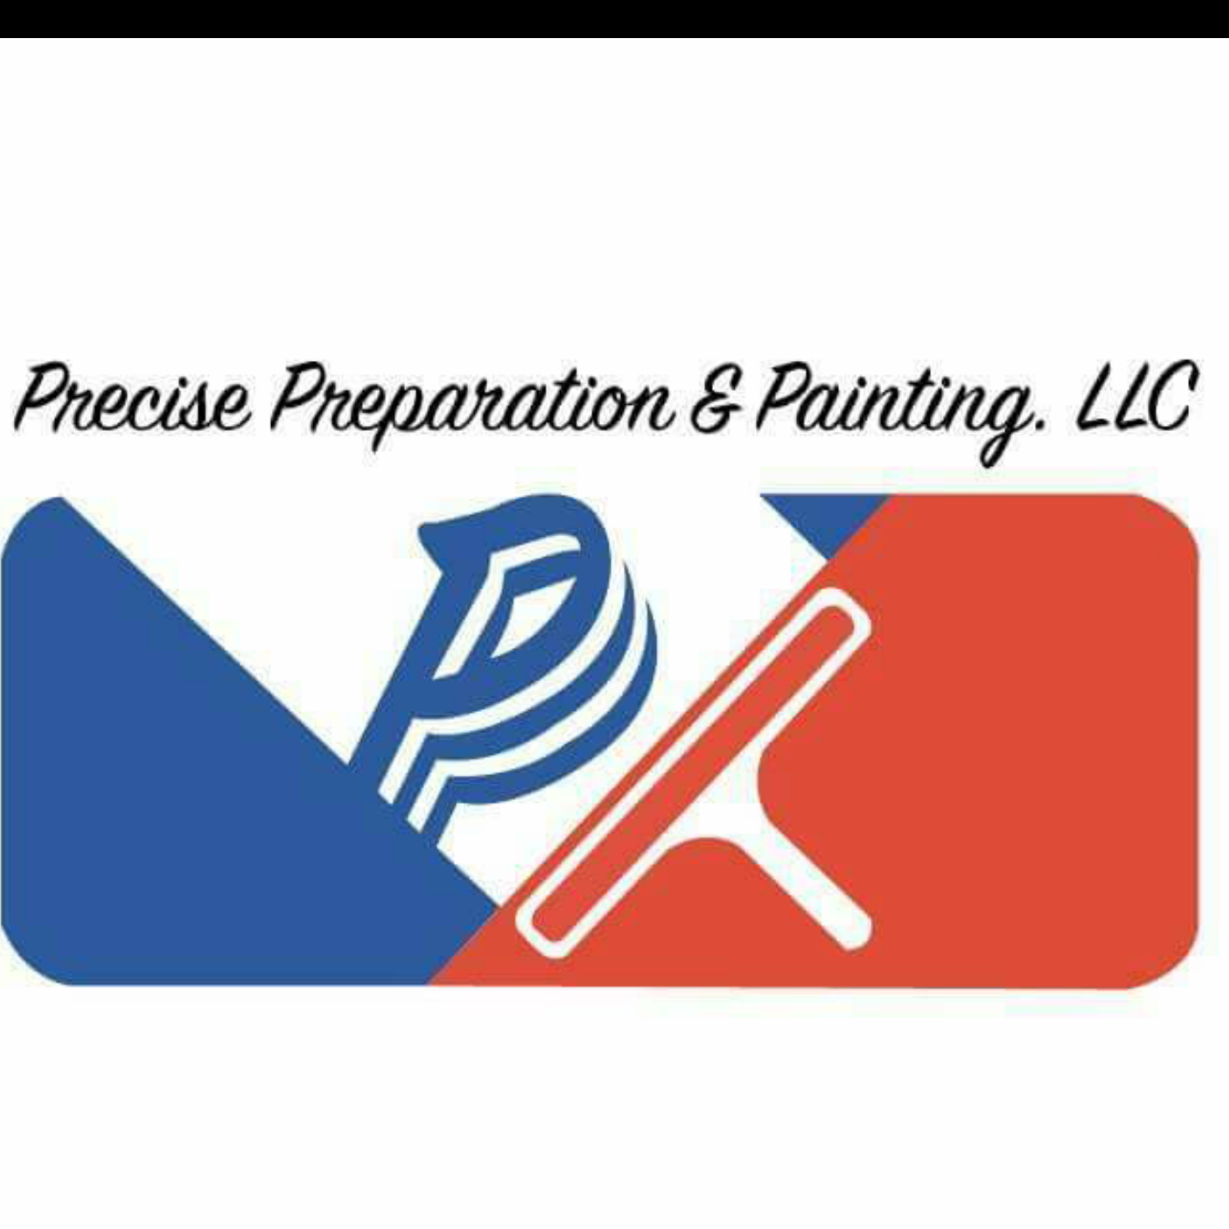 Precise Preparation Painting